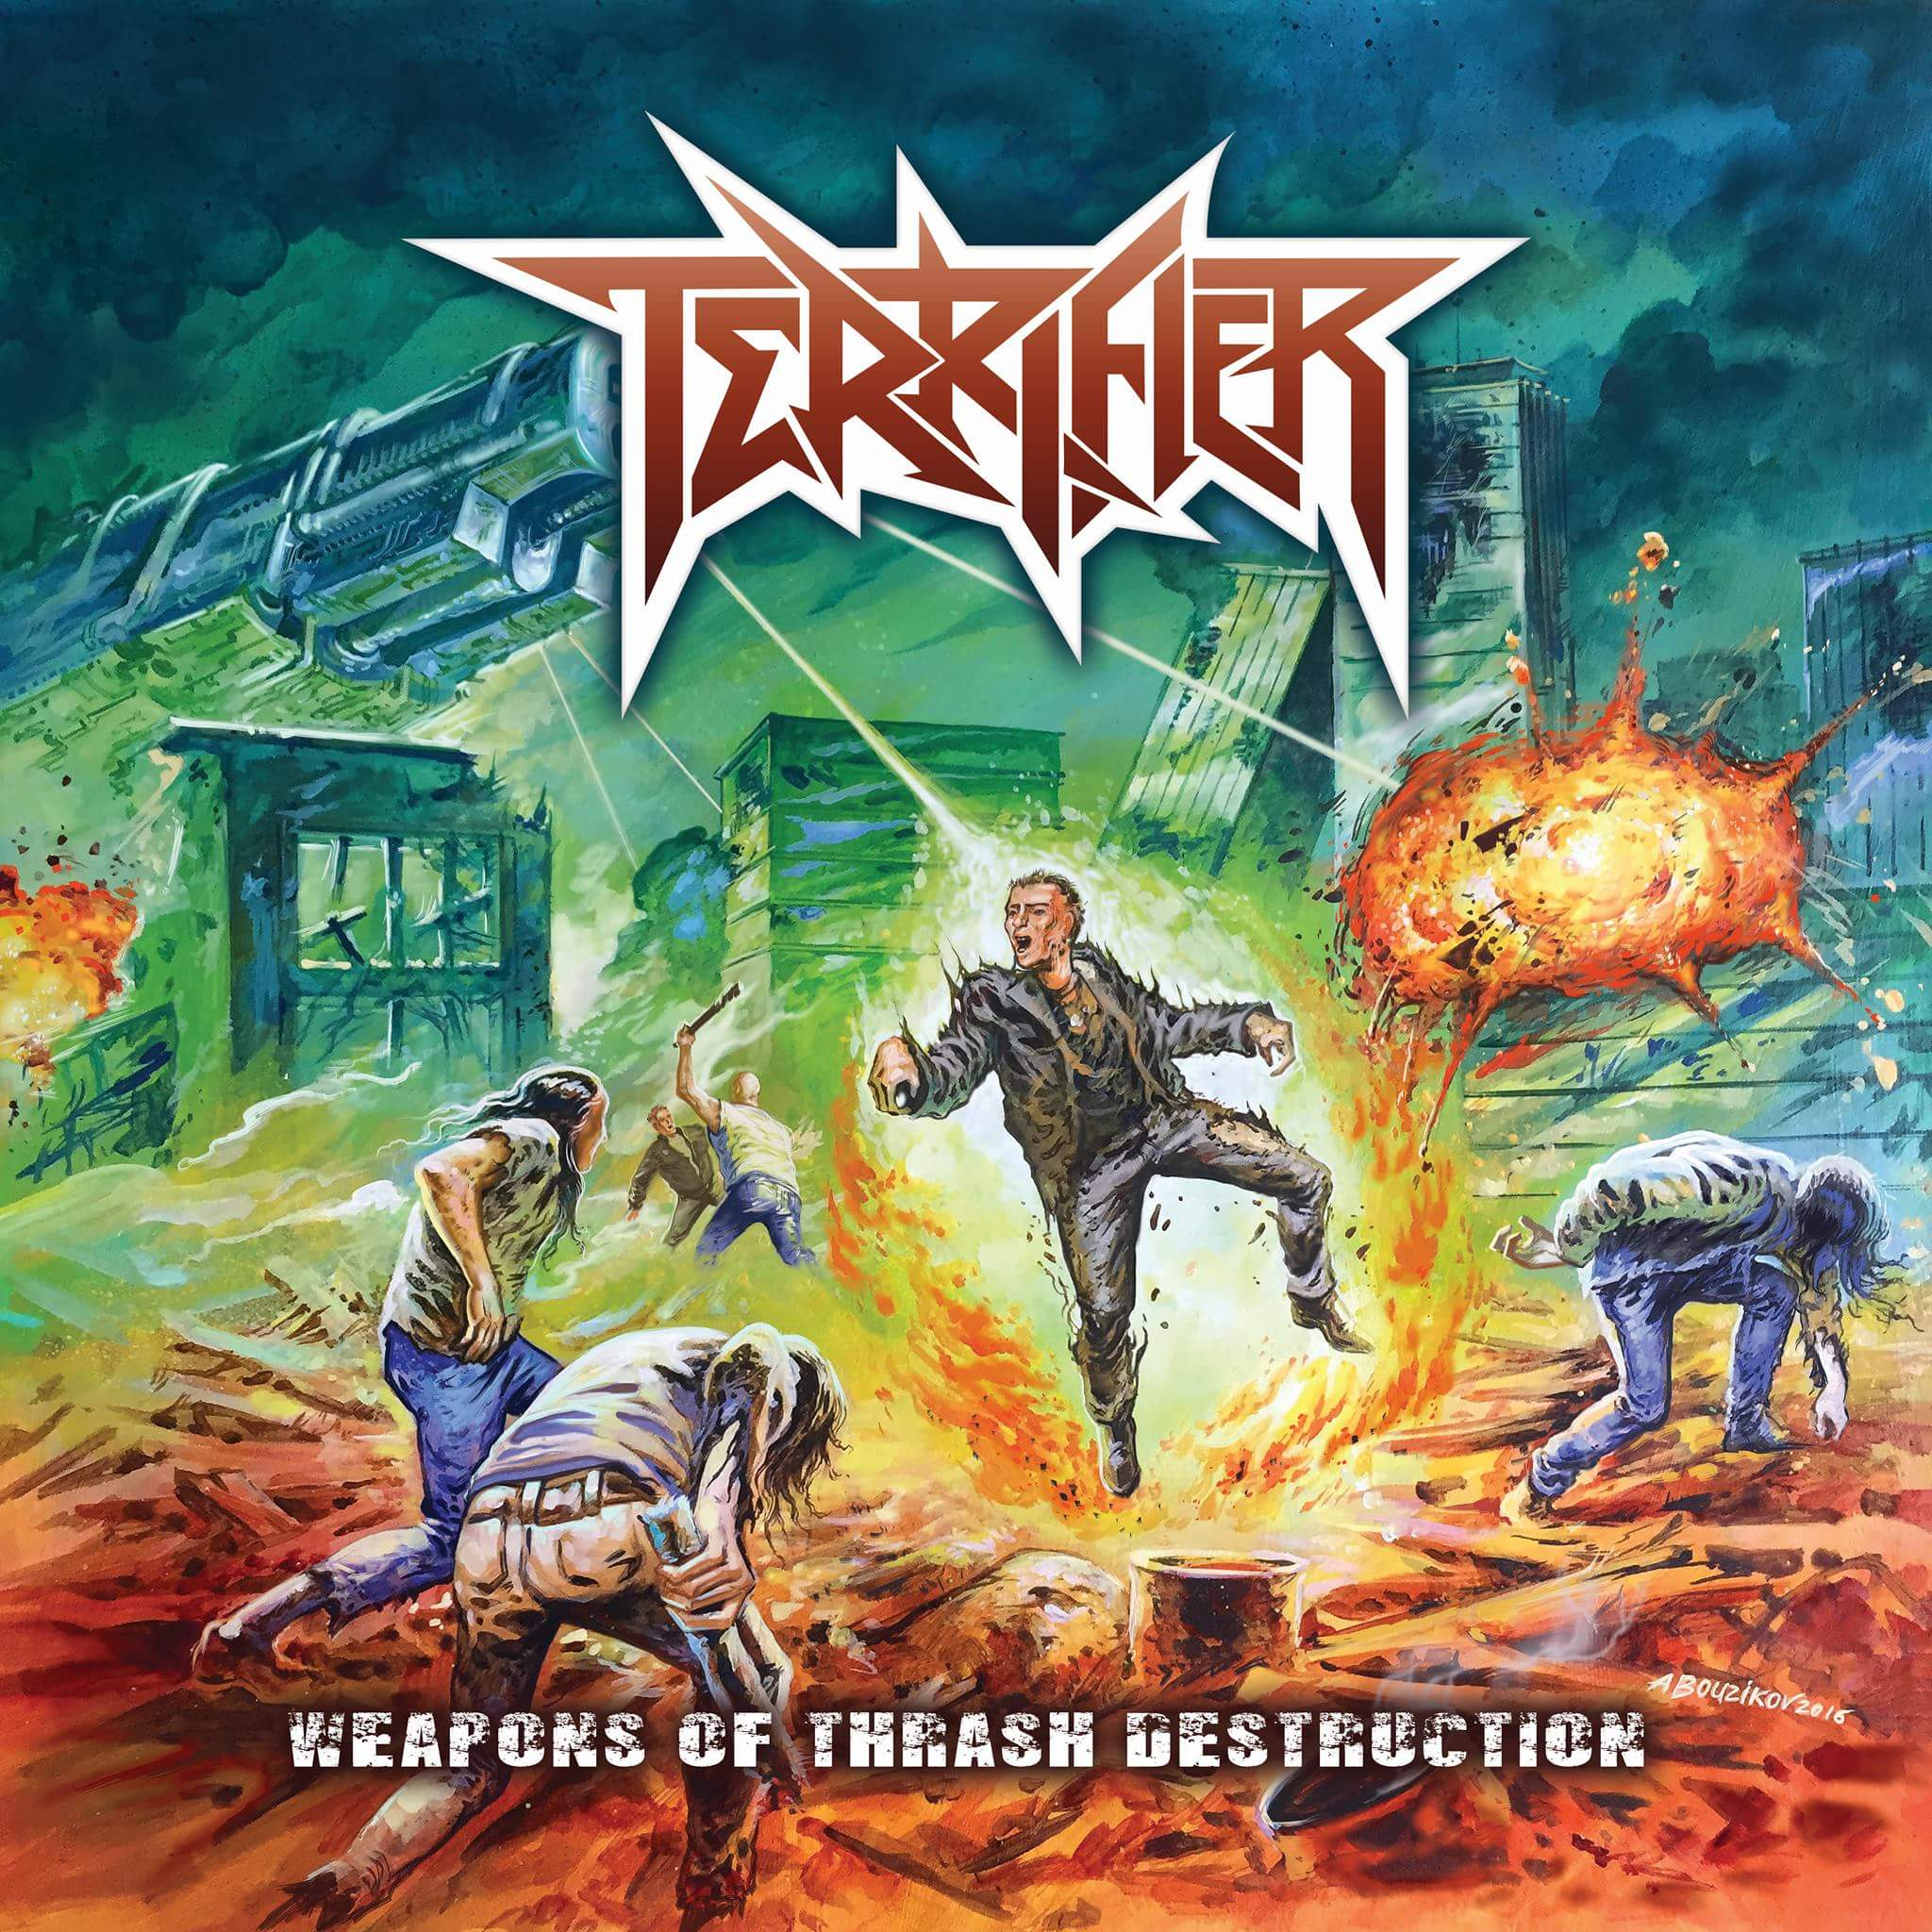 Albums: Terrifier / Weapons Of Thrash Destruction